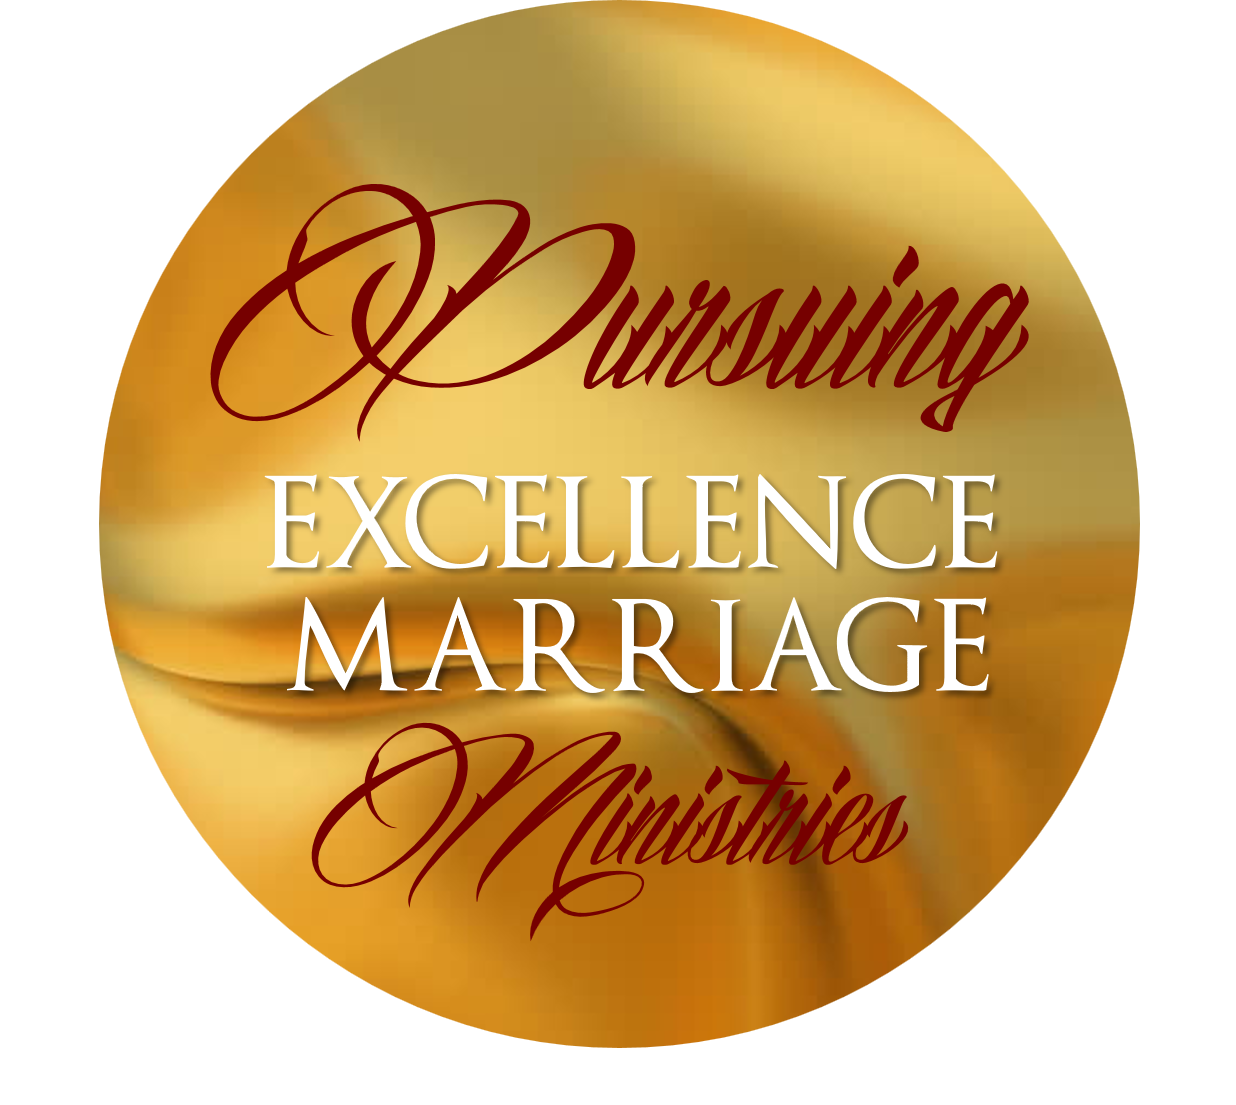 Excellence Marriage